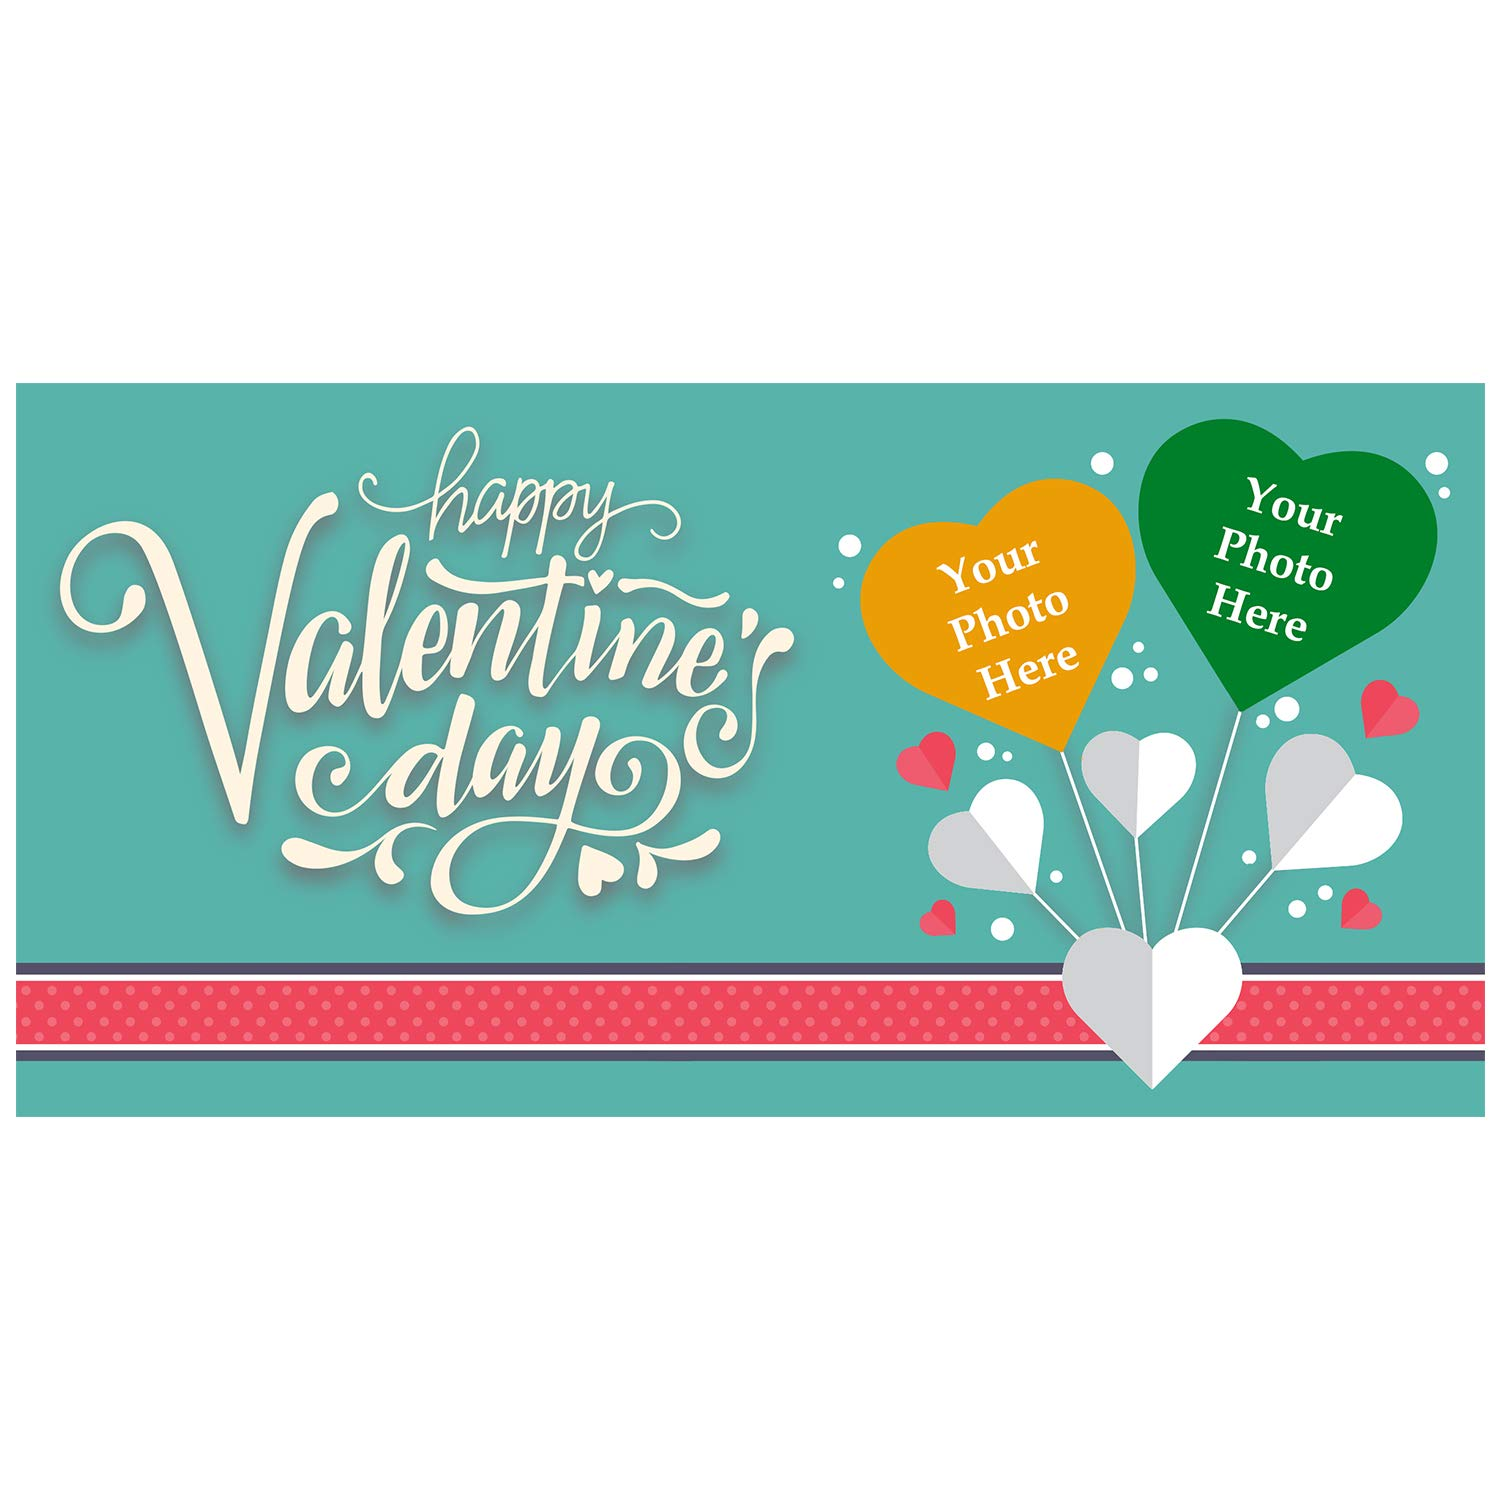 BANNER BUZZ MAKE IT VISIBLE Happy Valentine's Day Custom Magnetic Picture Pocket Frame, Self-Adhesive Pocket Photo Magnets for Refrigerator, Valentine Day Gifts & More (12'' X 24'')